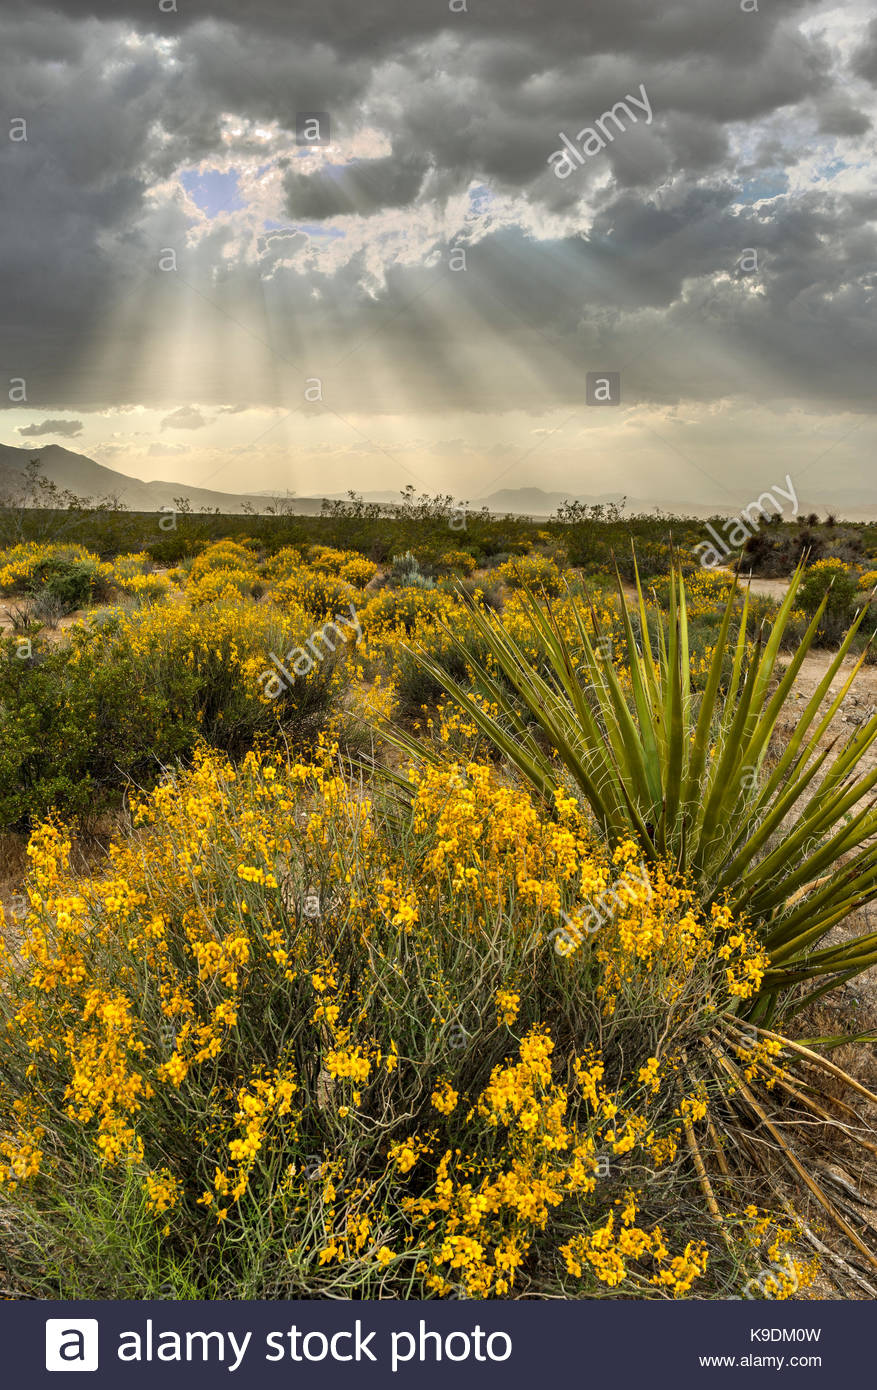 Yucca, Yellow Flowers end Sunrays at Sunset, Mojave National Preserve, California - Stock Image